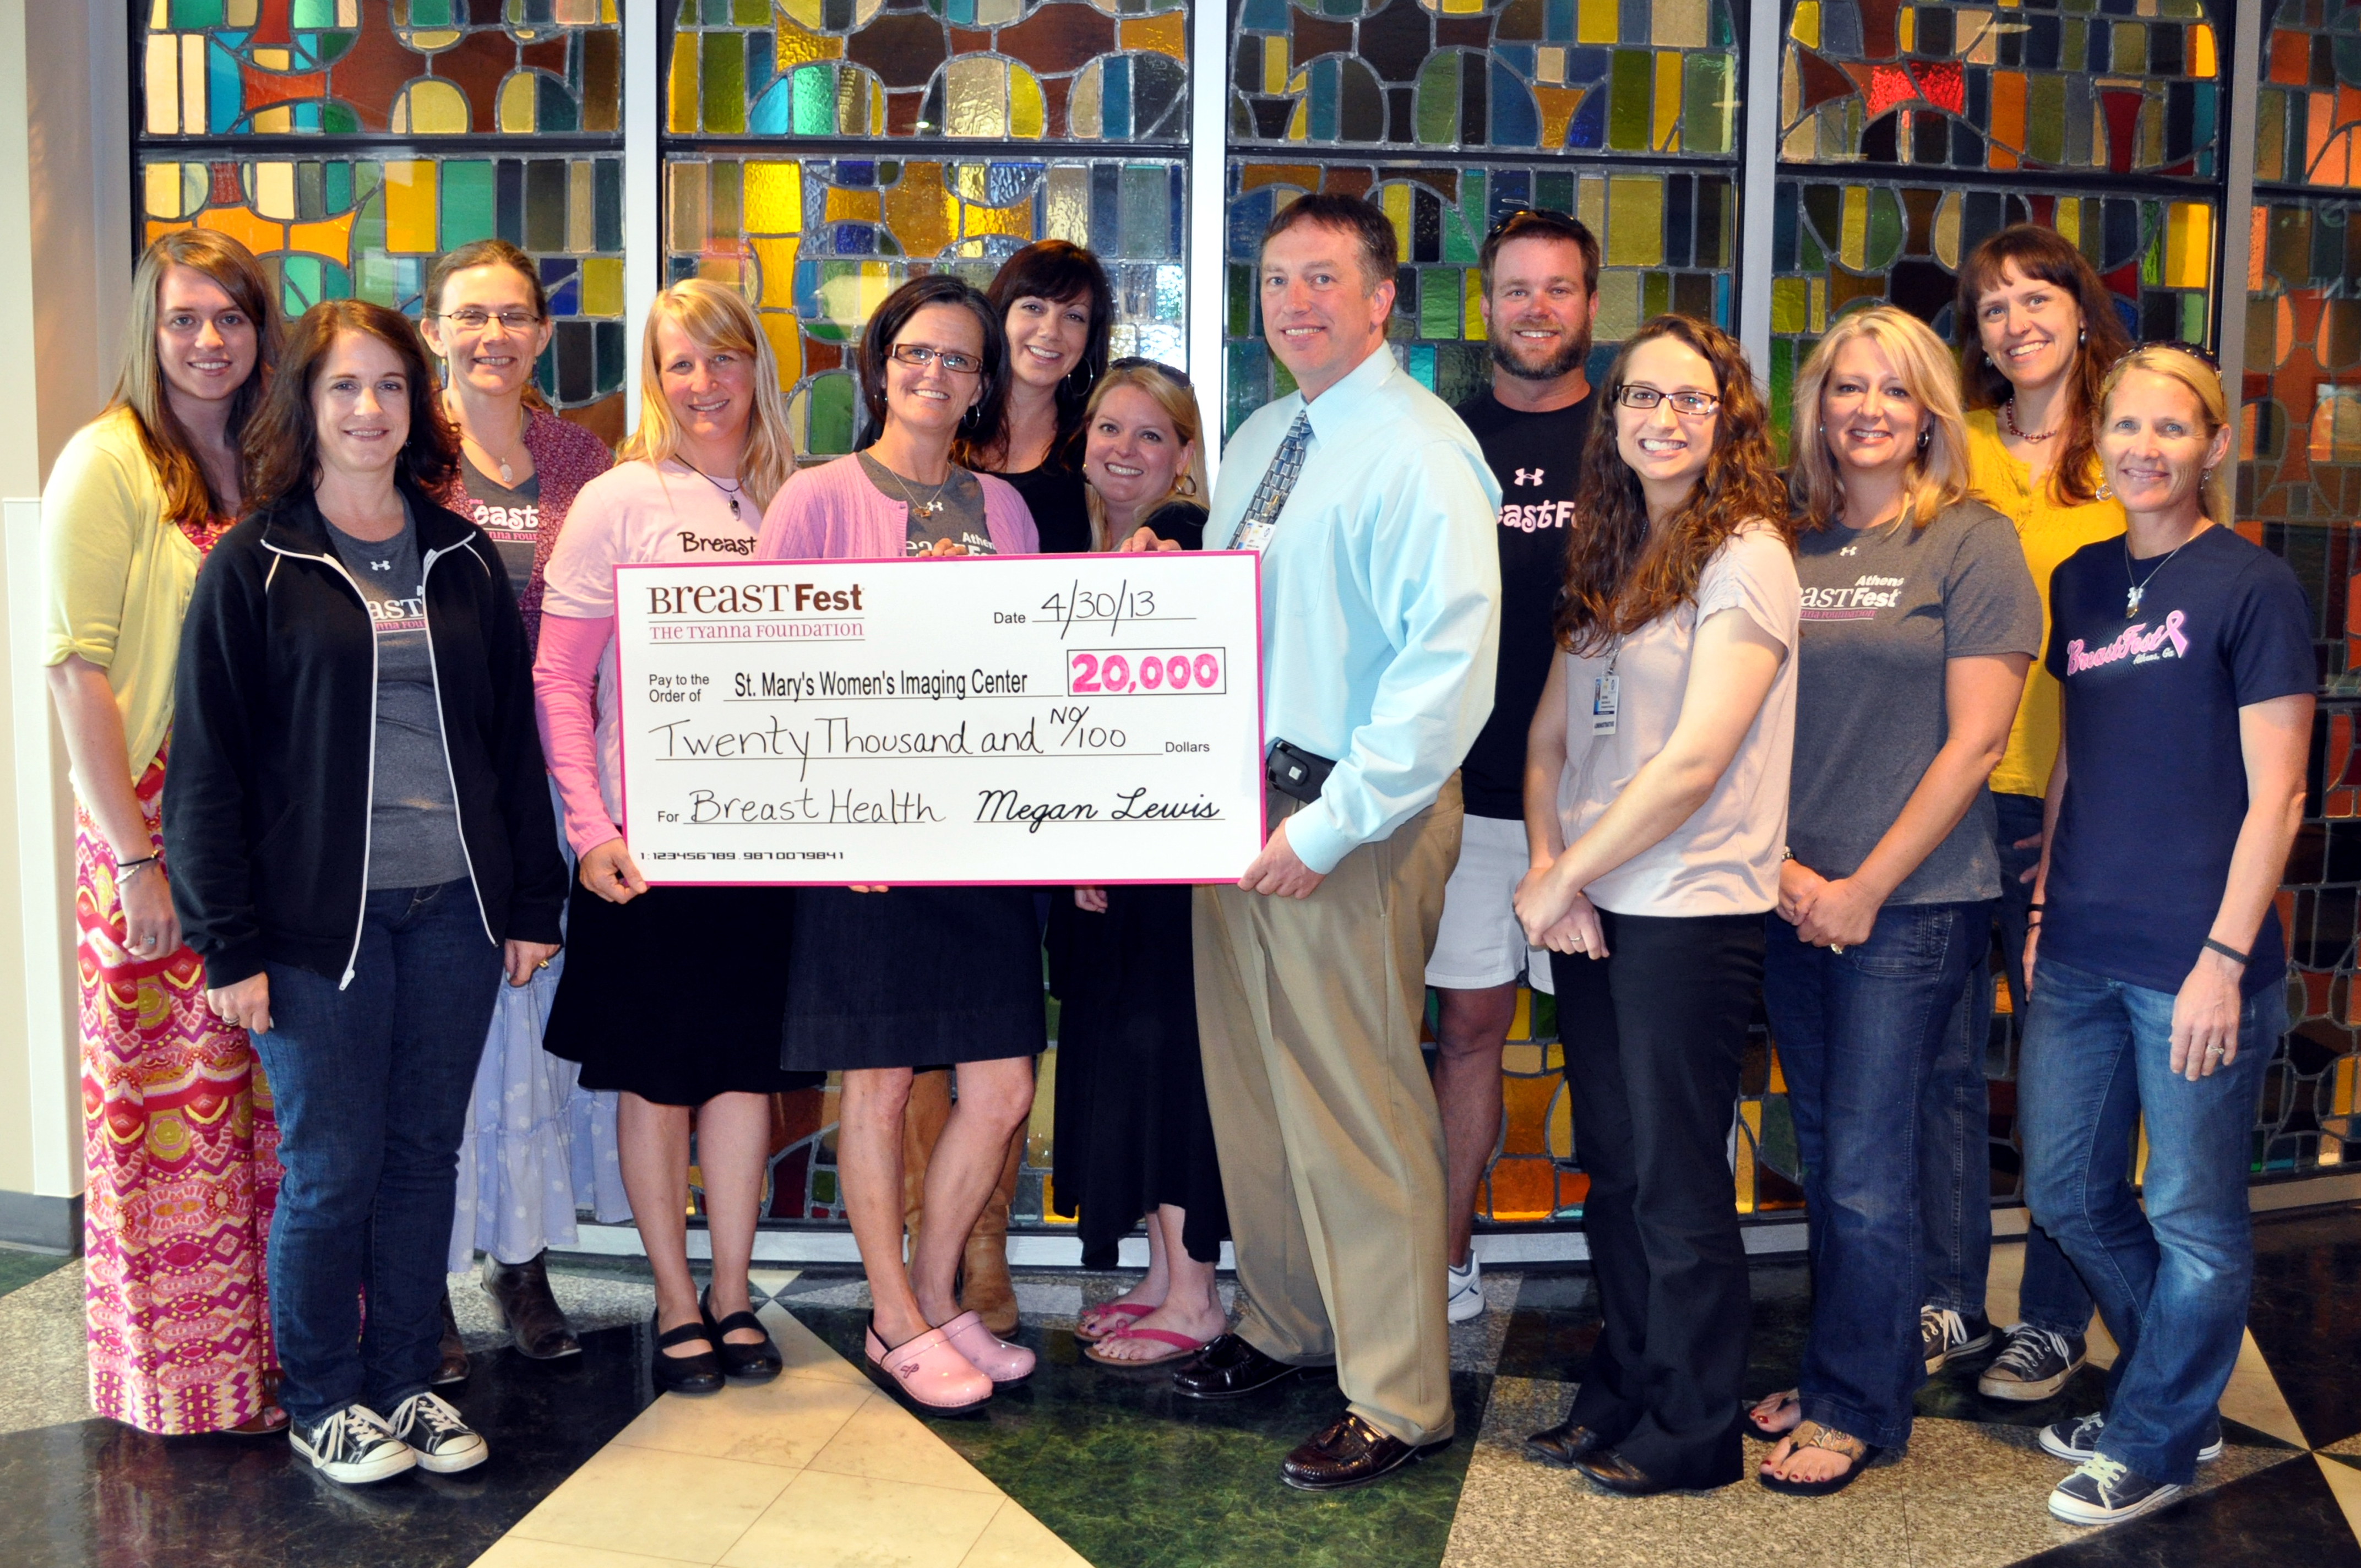 Breastfest 2013 check presentation crop